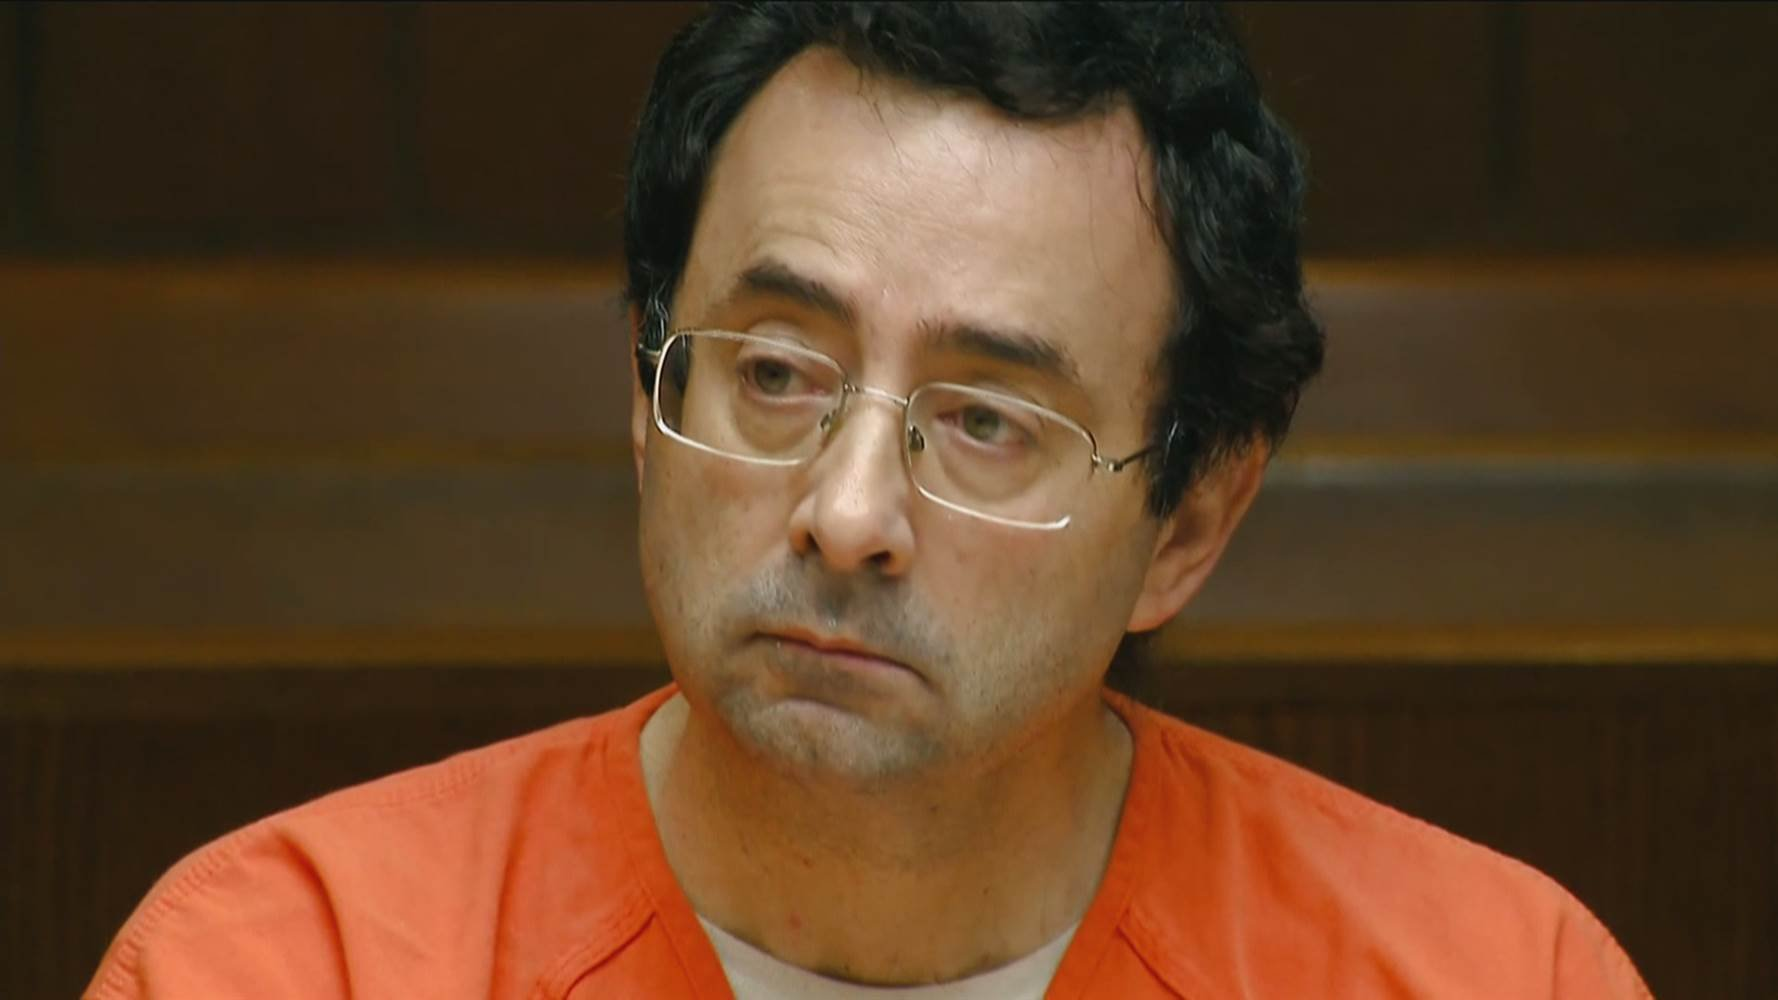 Disgraced ex-USA Gymnastics doctor Larry Nassar sent to Arizona federal prison